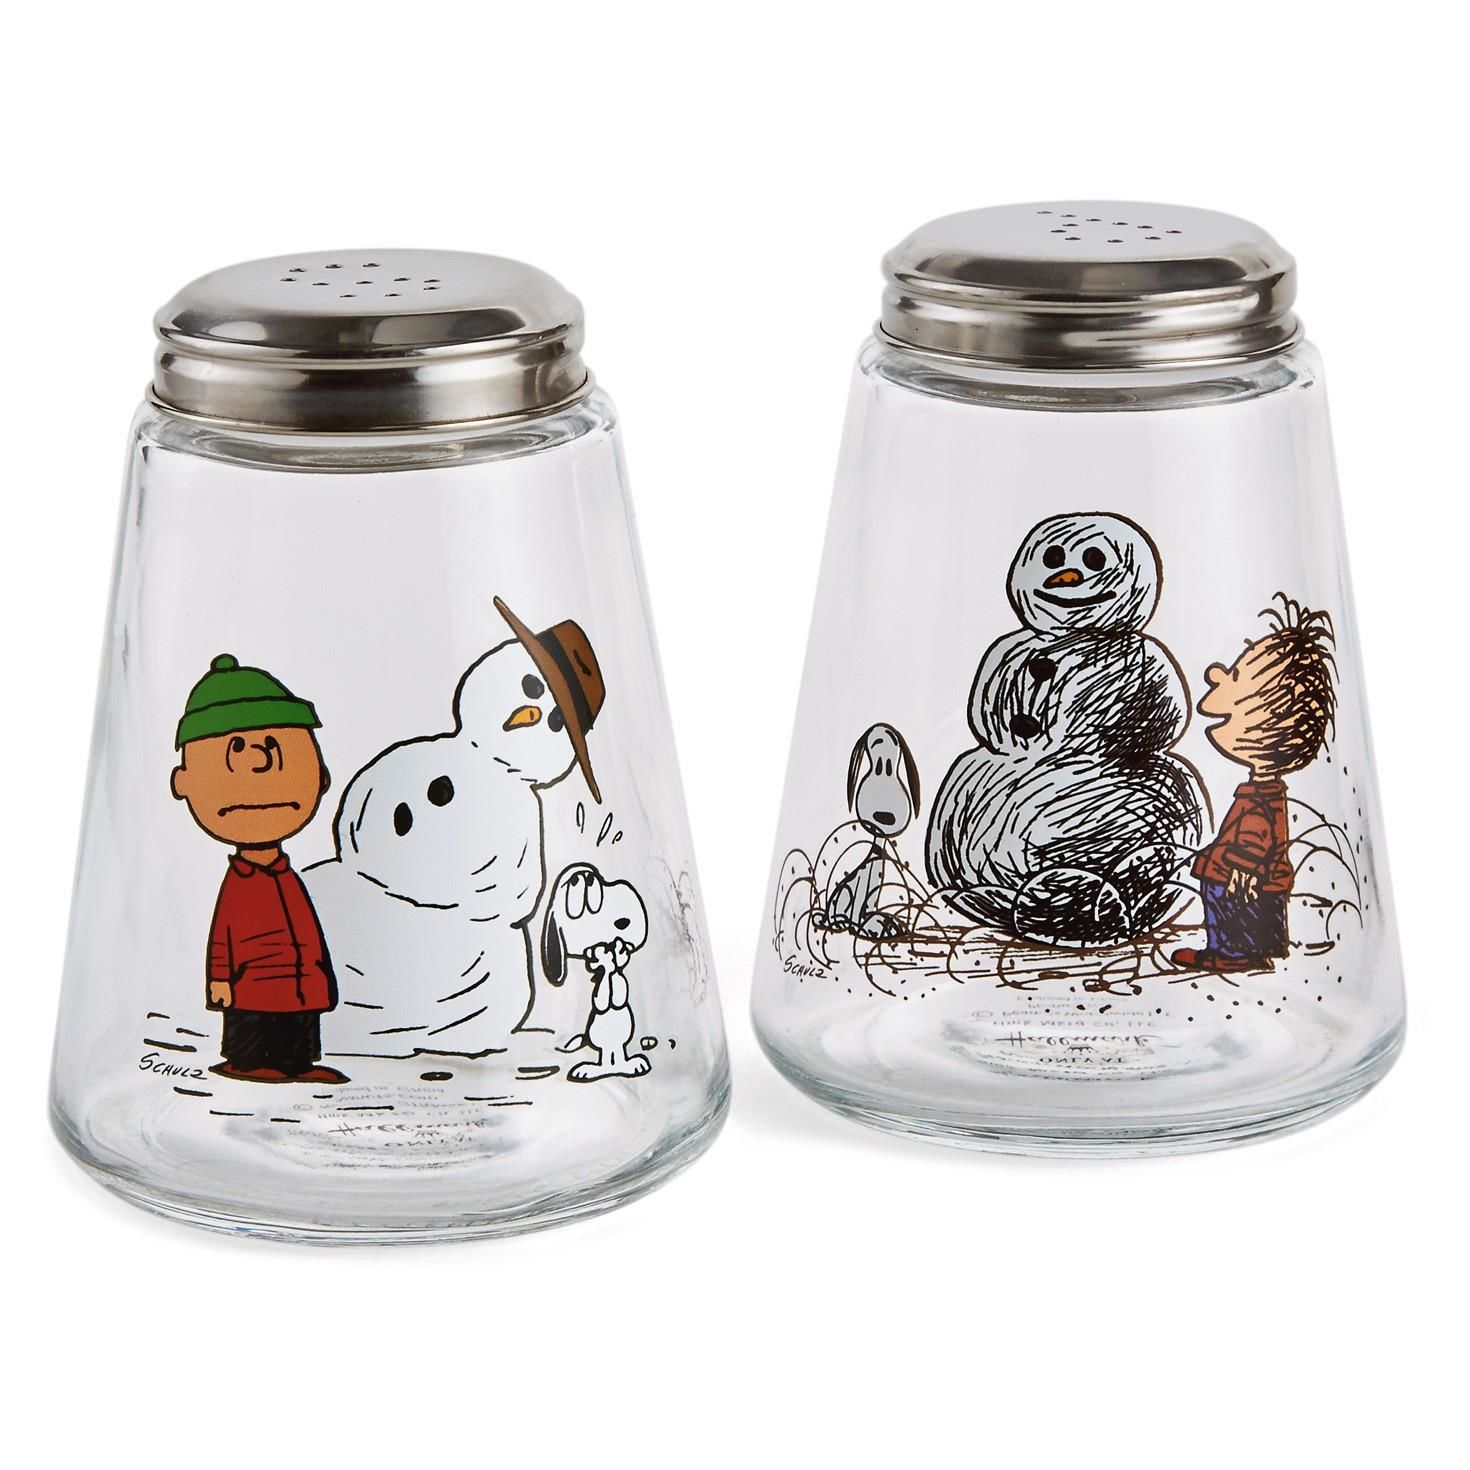 seasonings-greetings-stainless-steel-salt-and-pepper-shakers-root-1xkt1509_1470_1